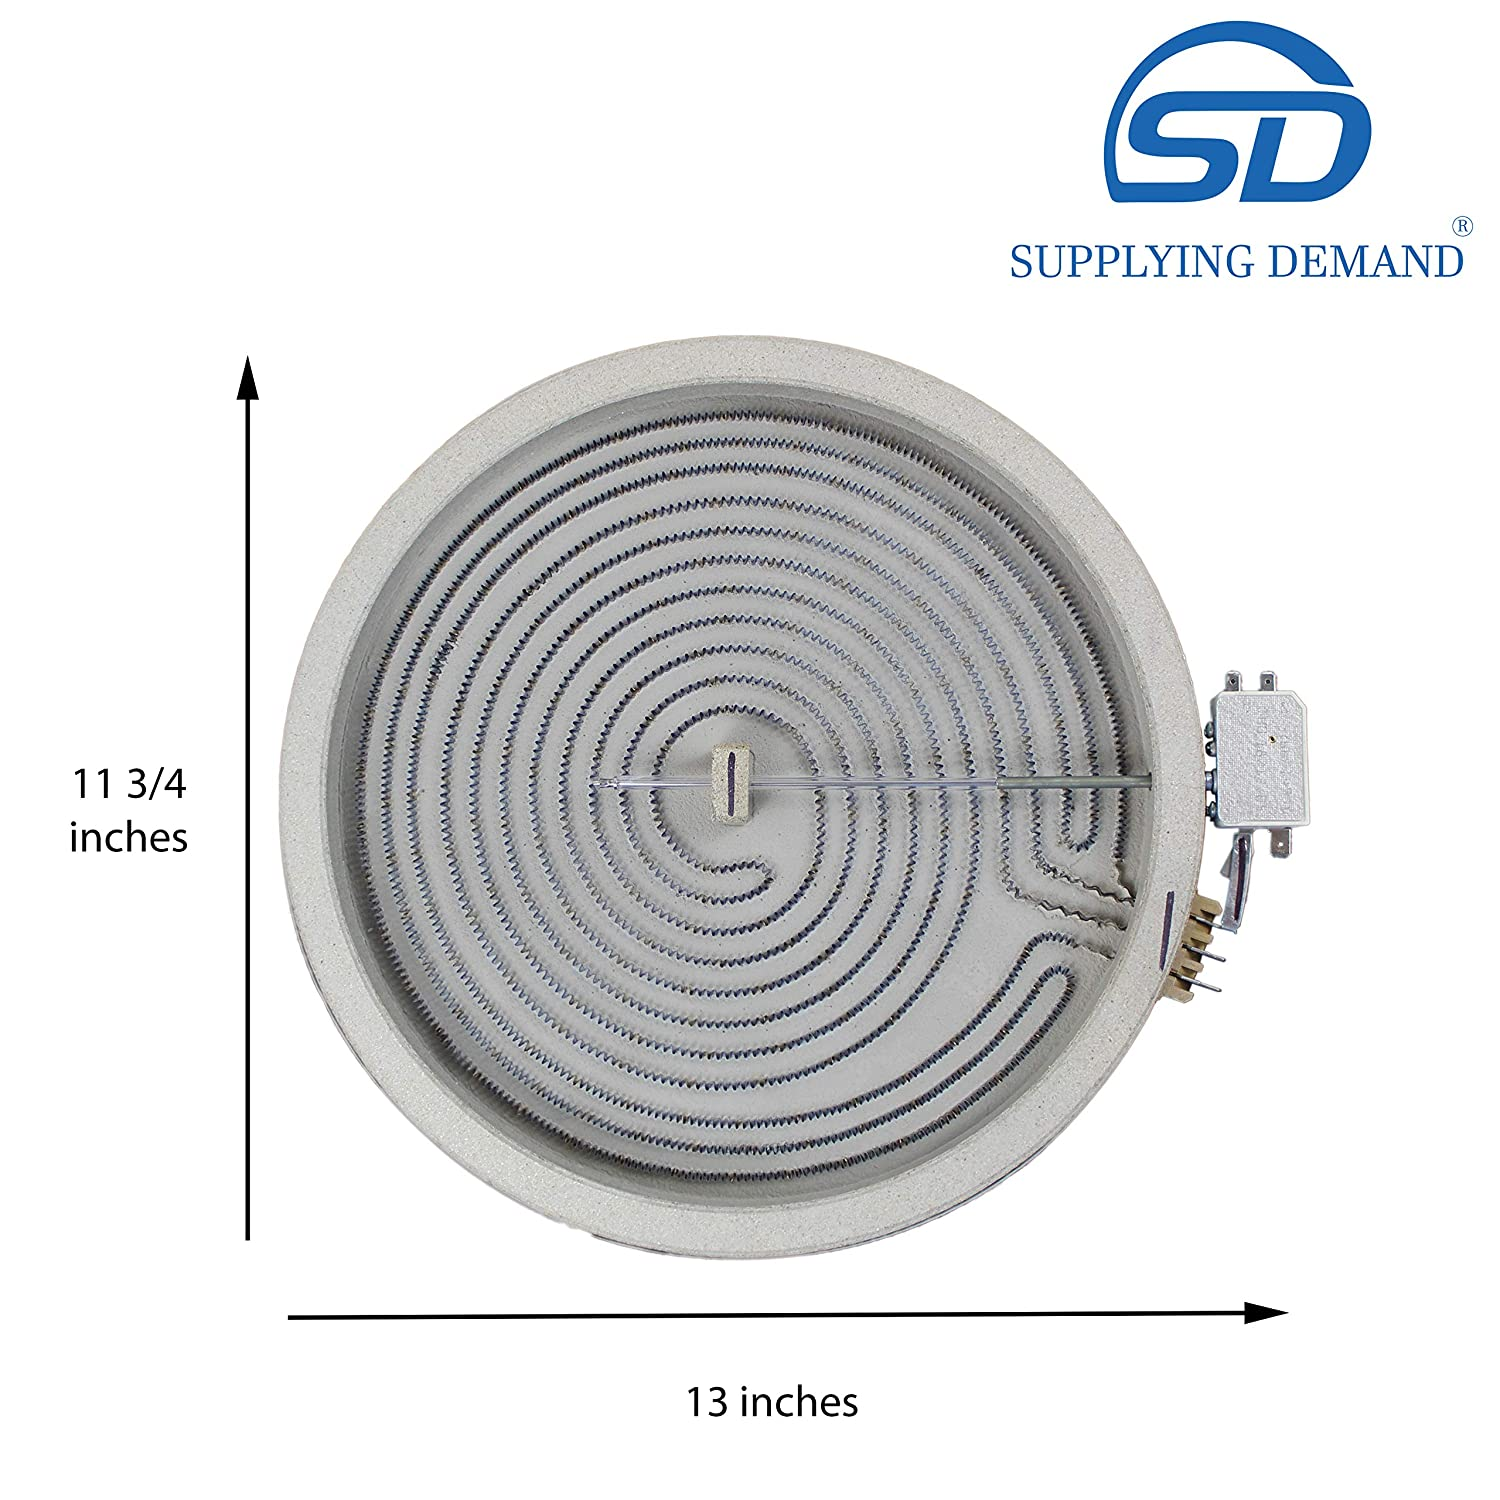 Amazon.com: Supplying Demand WB30T10130 Element Haliant ...